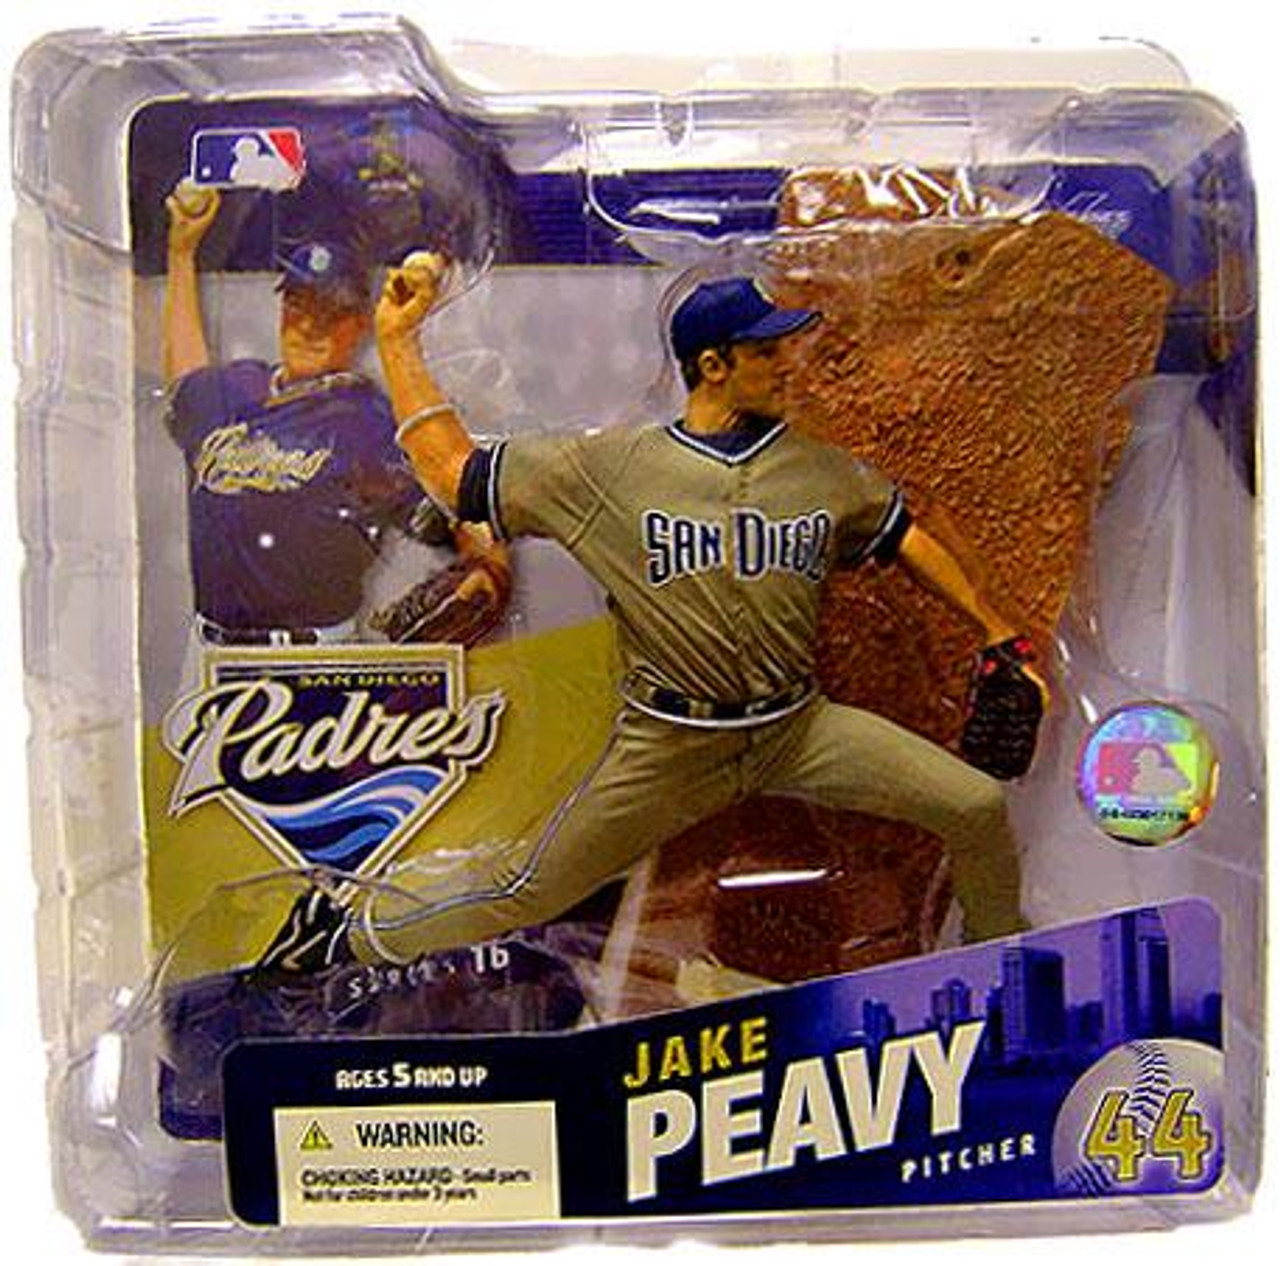 McFarlane Toys MLB San Diego Padres Sports Picks Series 16 Jake Peavy Action Figure [Sand Jersey Variant]